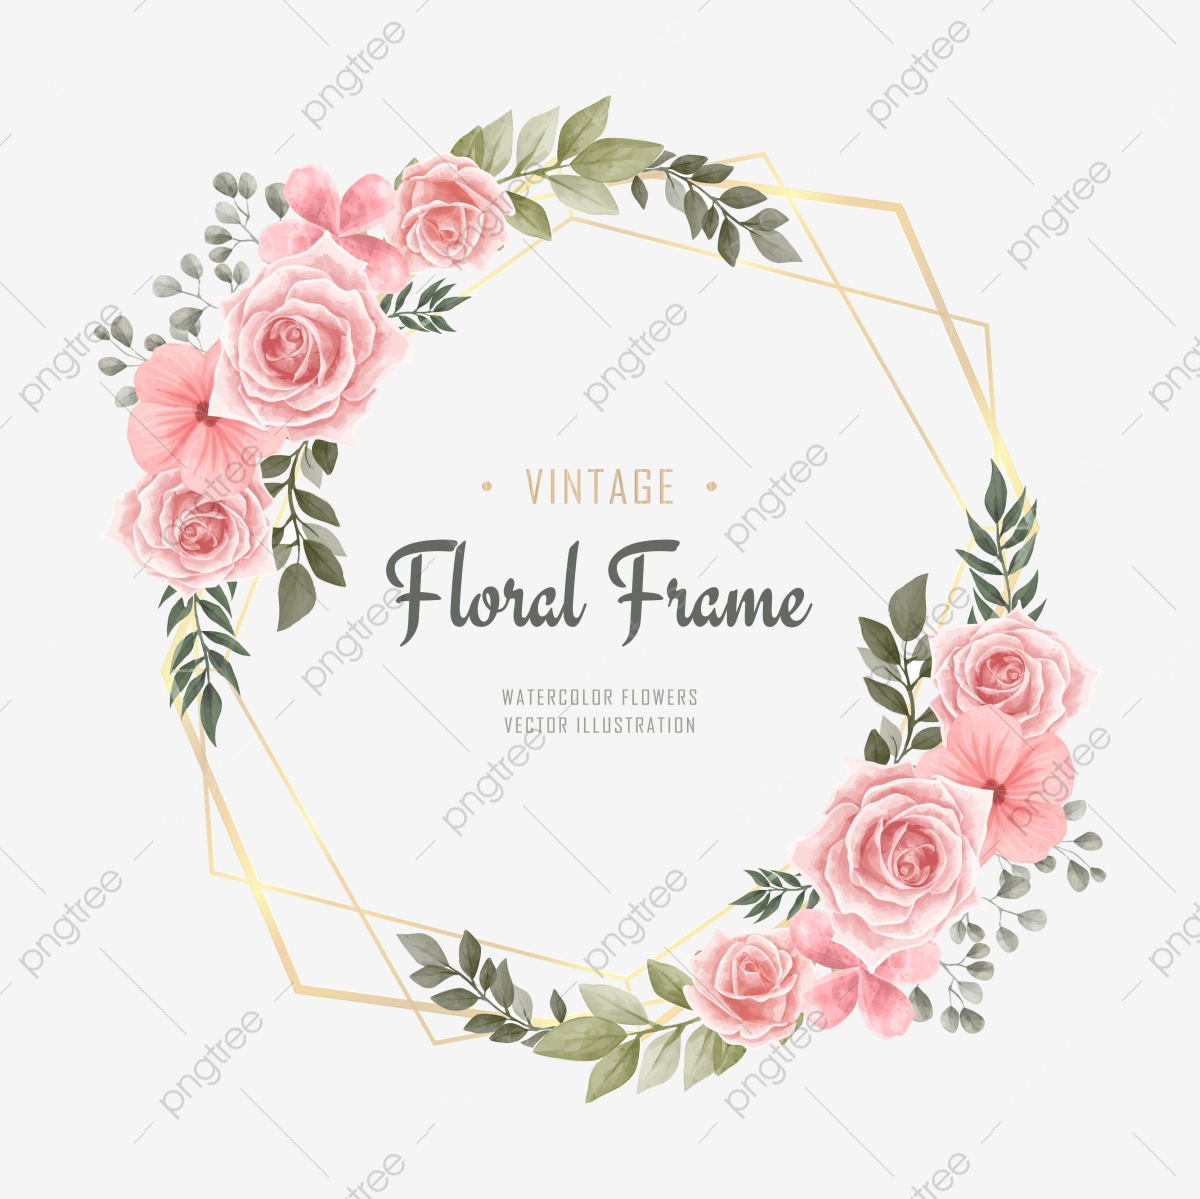 flower frame png vector psd and clipart with transparent background for free download pngtree https pngtree com freepng watercolor floral flower frame background 4836576 html